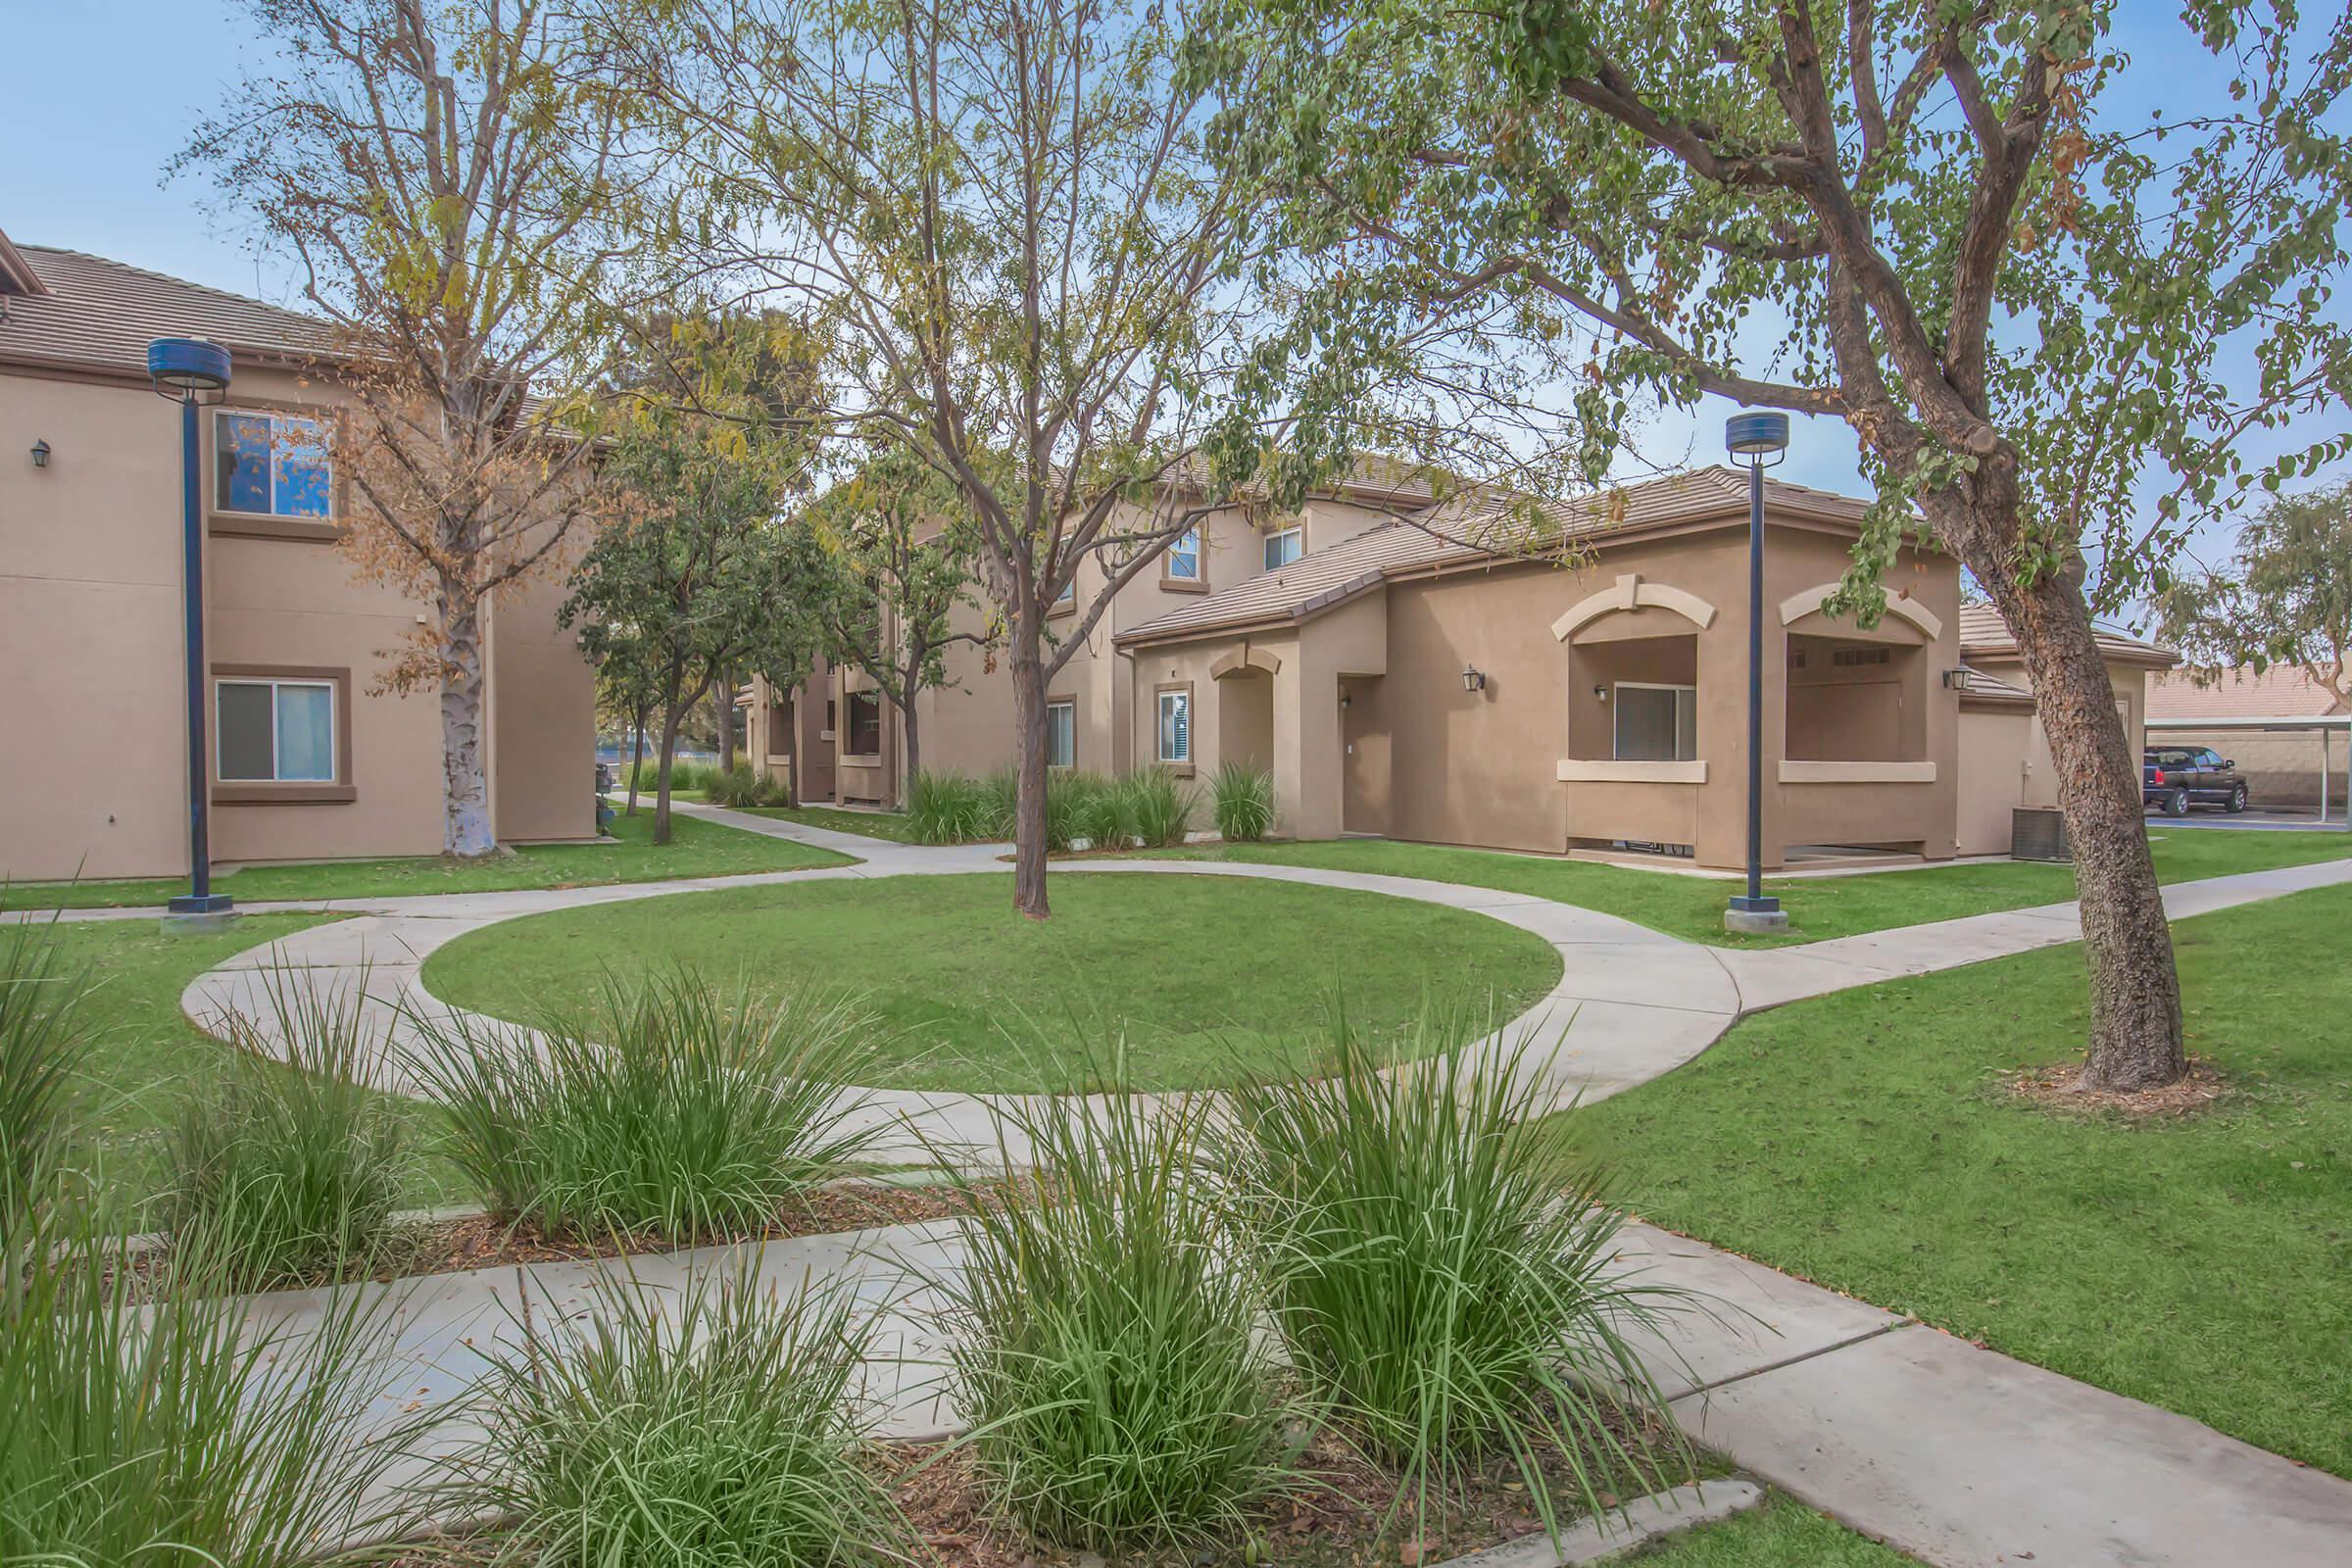 Breakwater Apartments courtyard with green landscaping